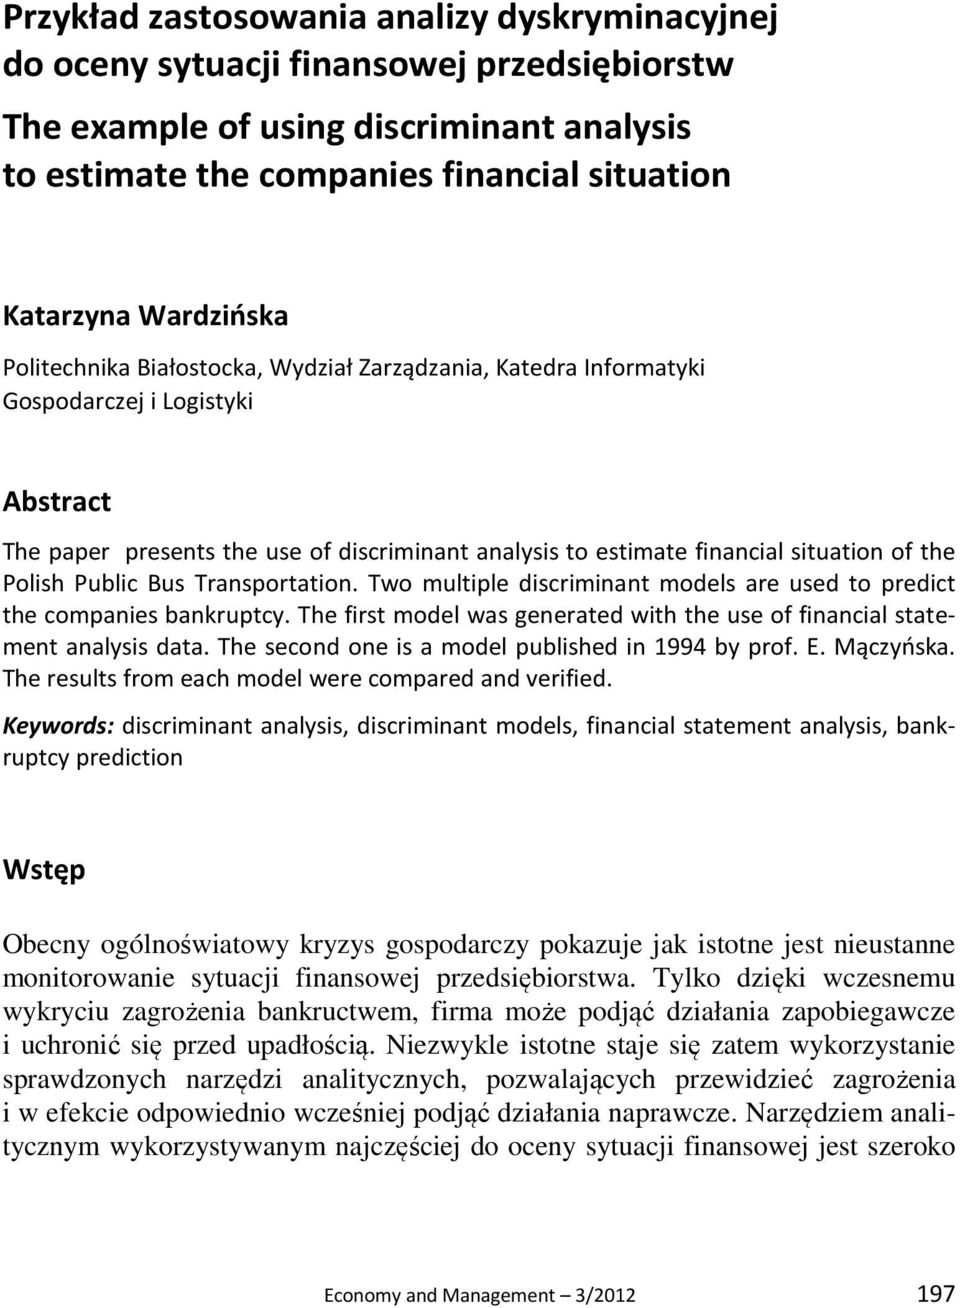 the Polish Public Bus Transportation. Two multiple discriminant models are used to predict the companies bankruptcy. The first model was generated with the use of financial statement analysis data.